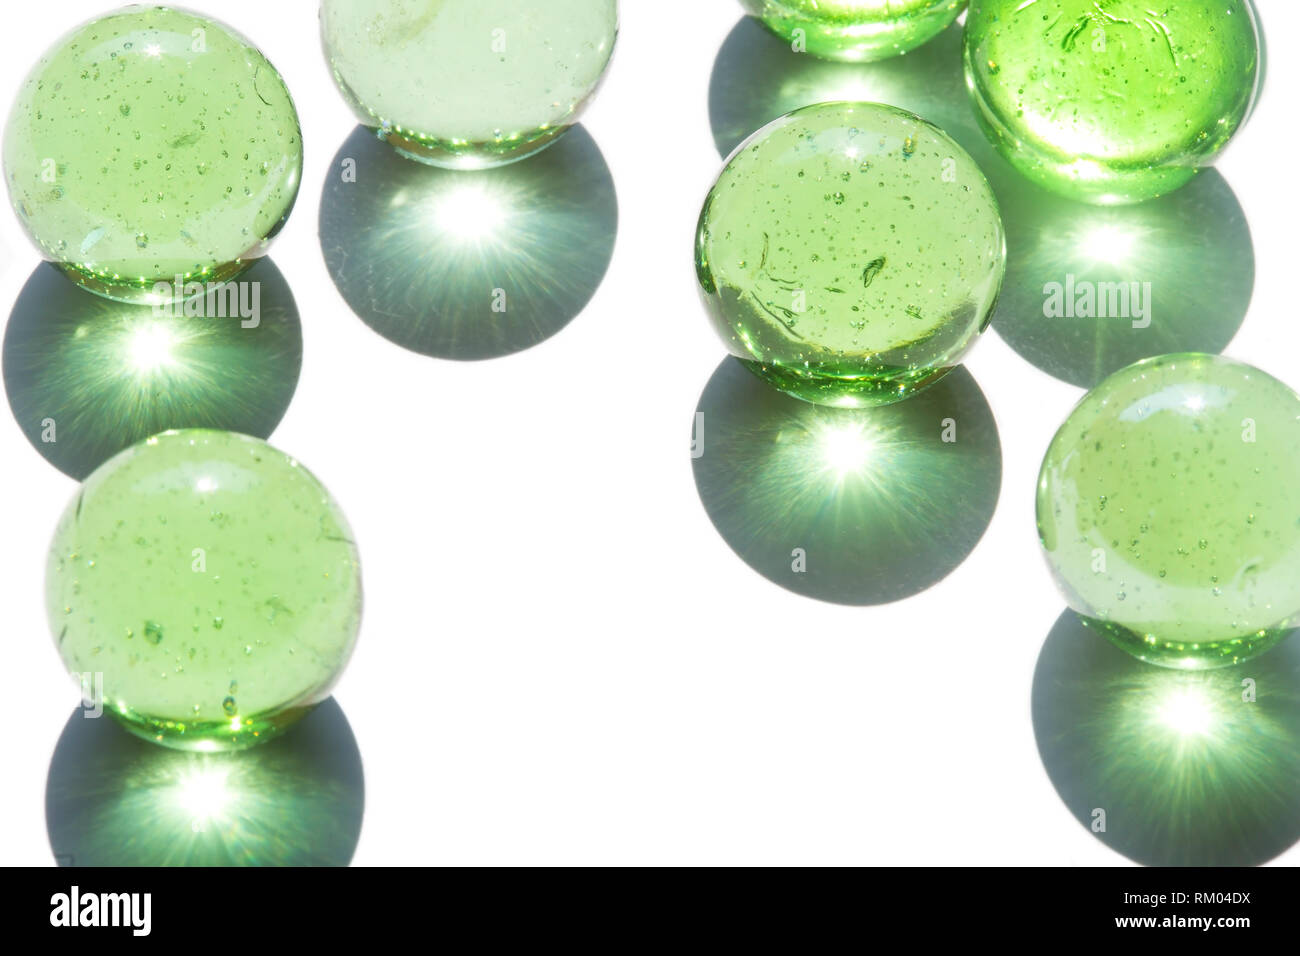 Green glass marbles with shadows - Stock Image